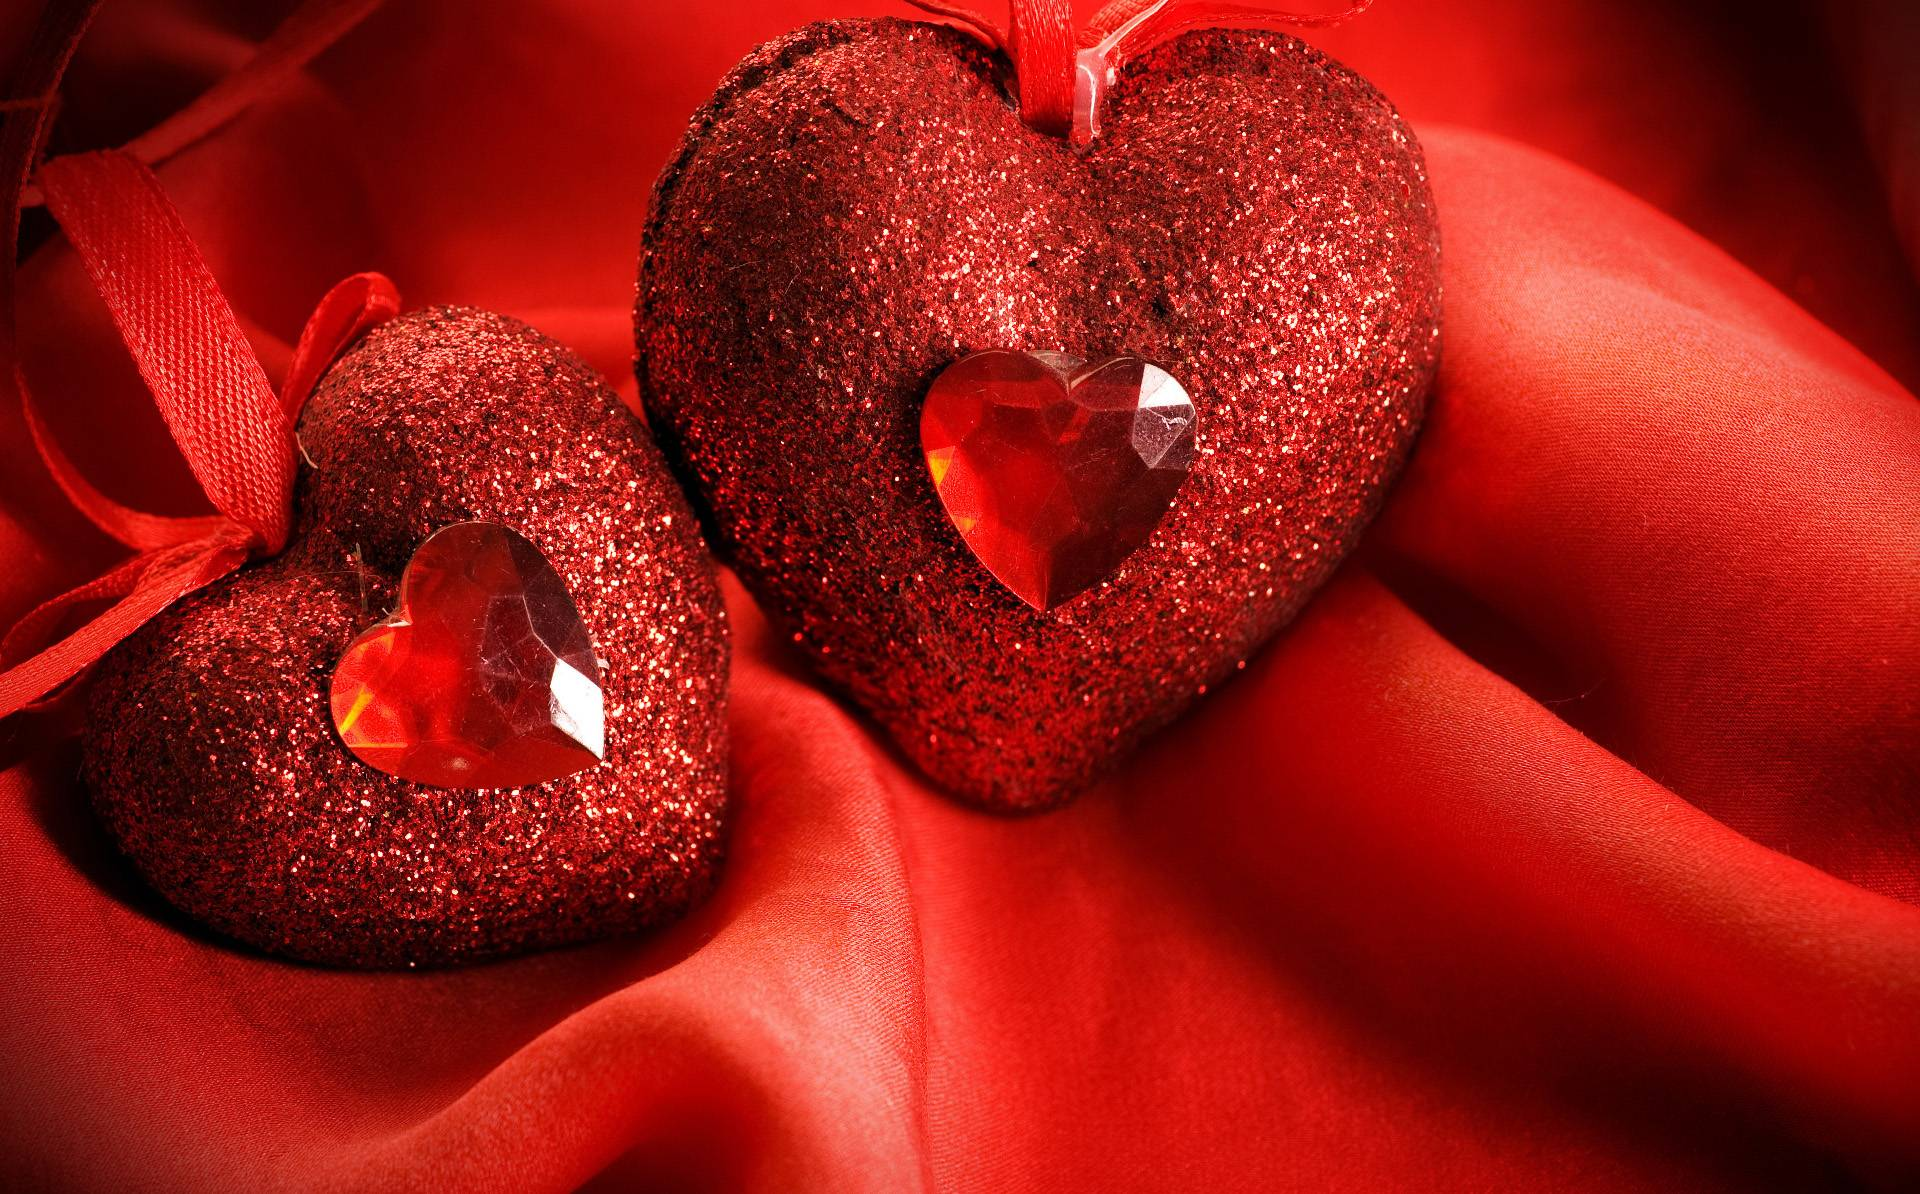 Love Wallpaper Hd High Resolution : Love Heart Wallpapers HD - Wallpaper cave